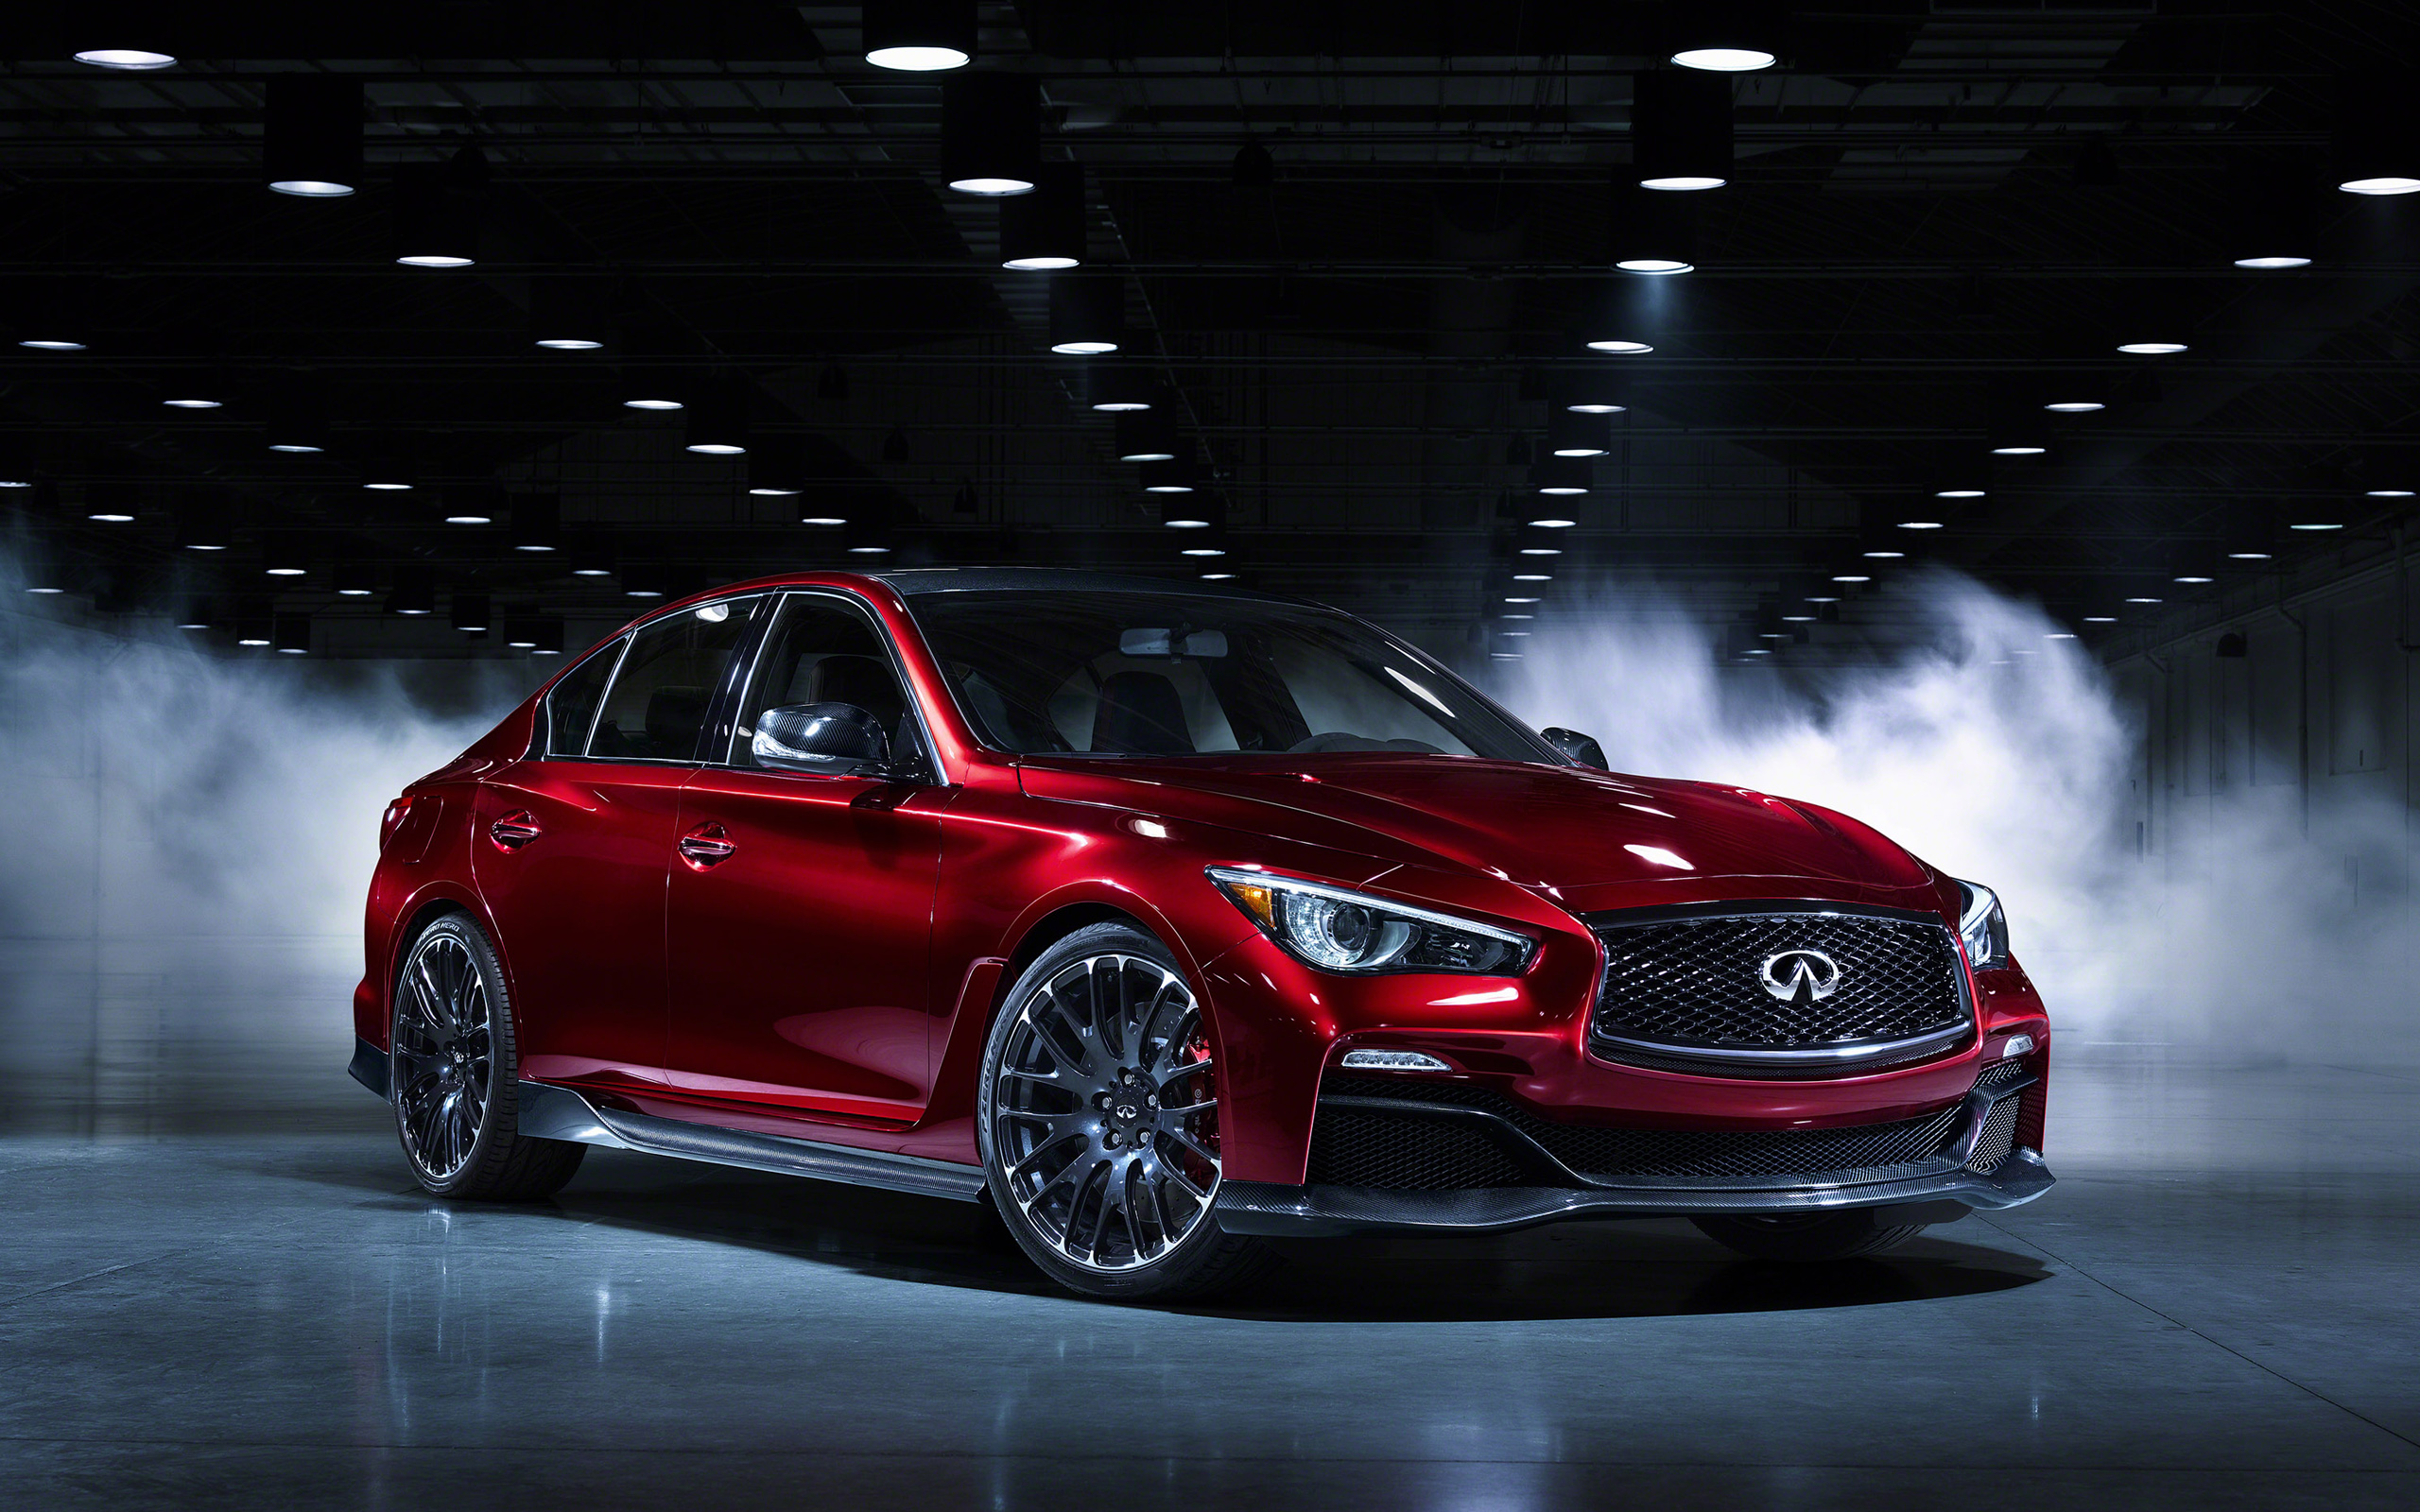 Infiniti Q50 Wallpapers and Background Images - stmed.net